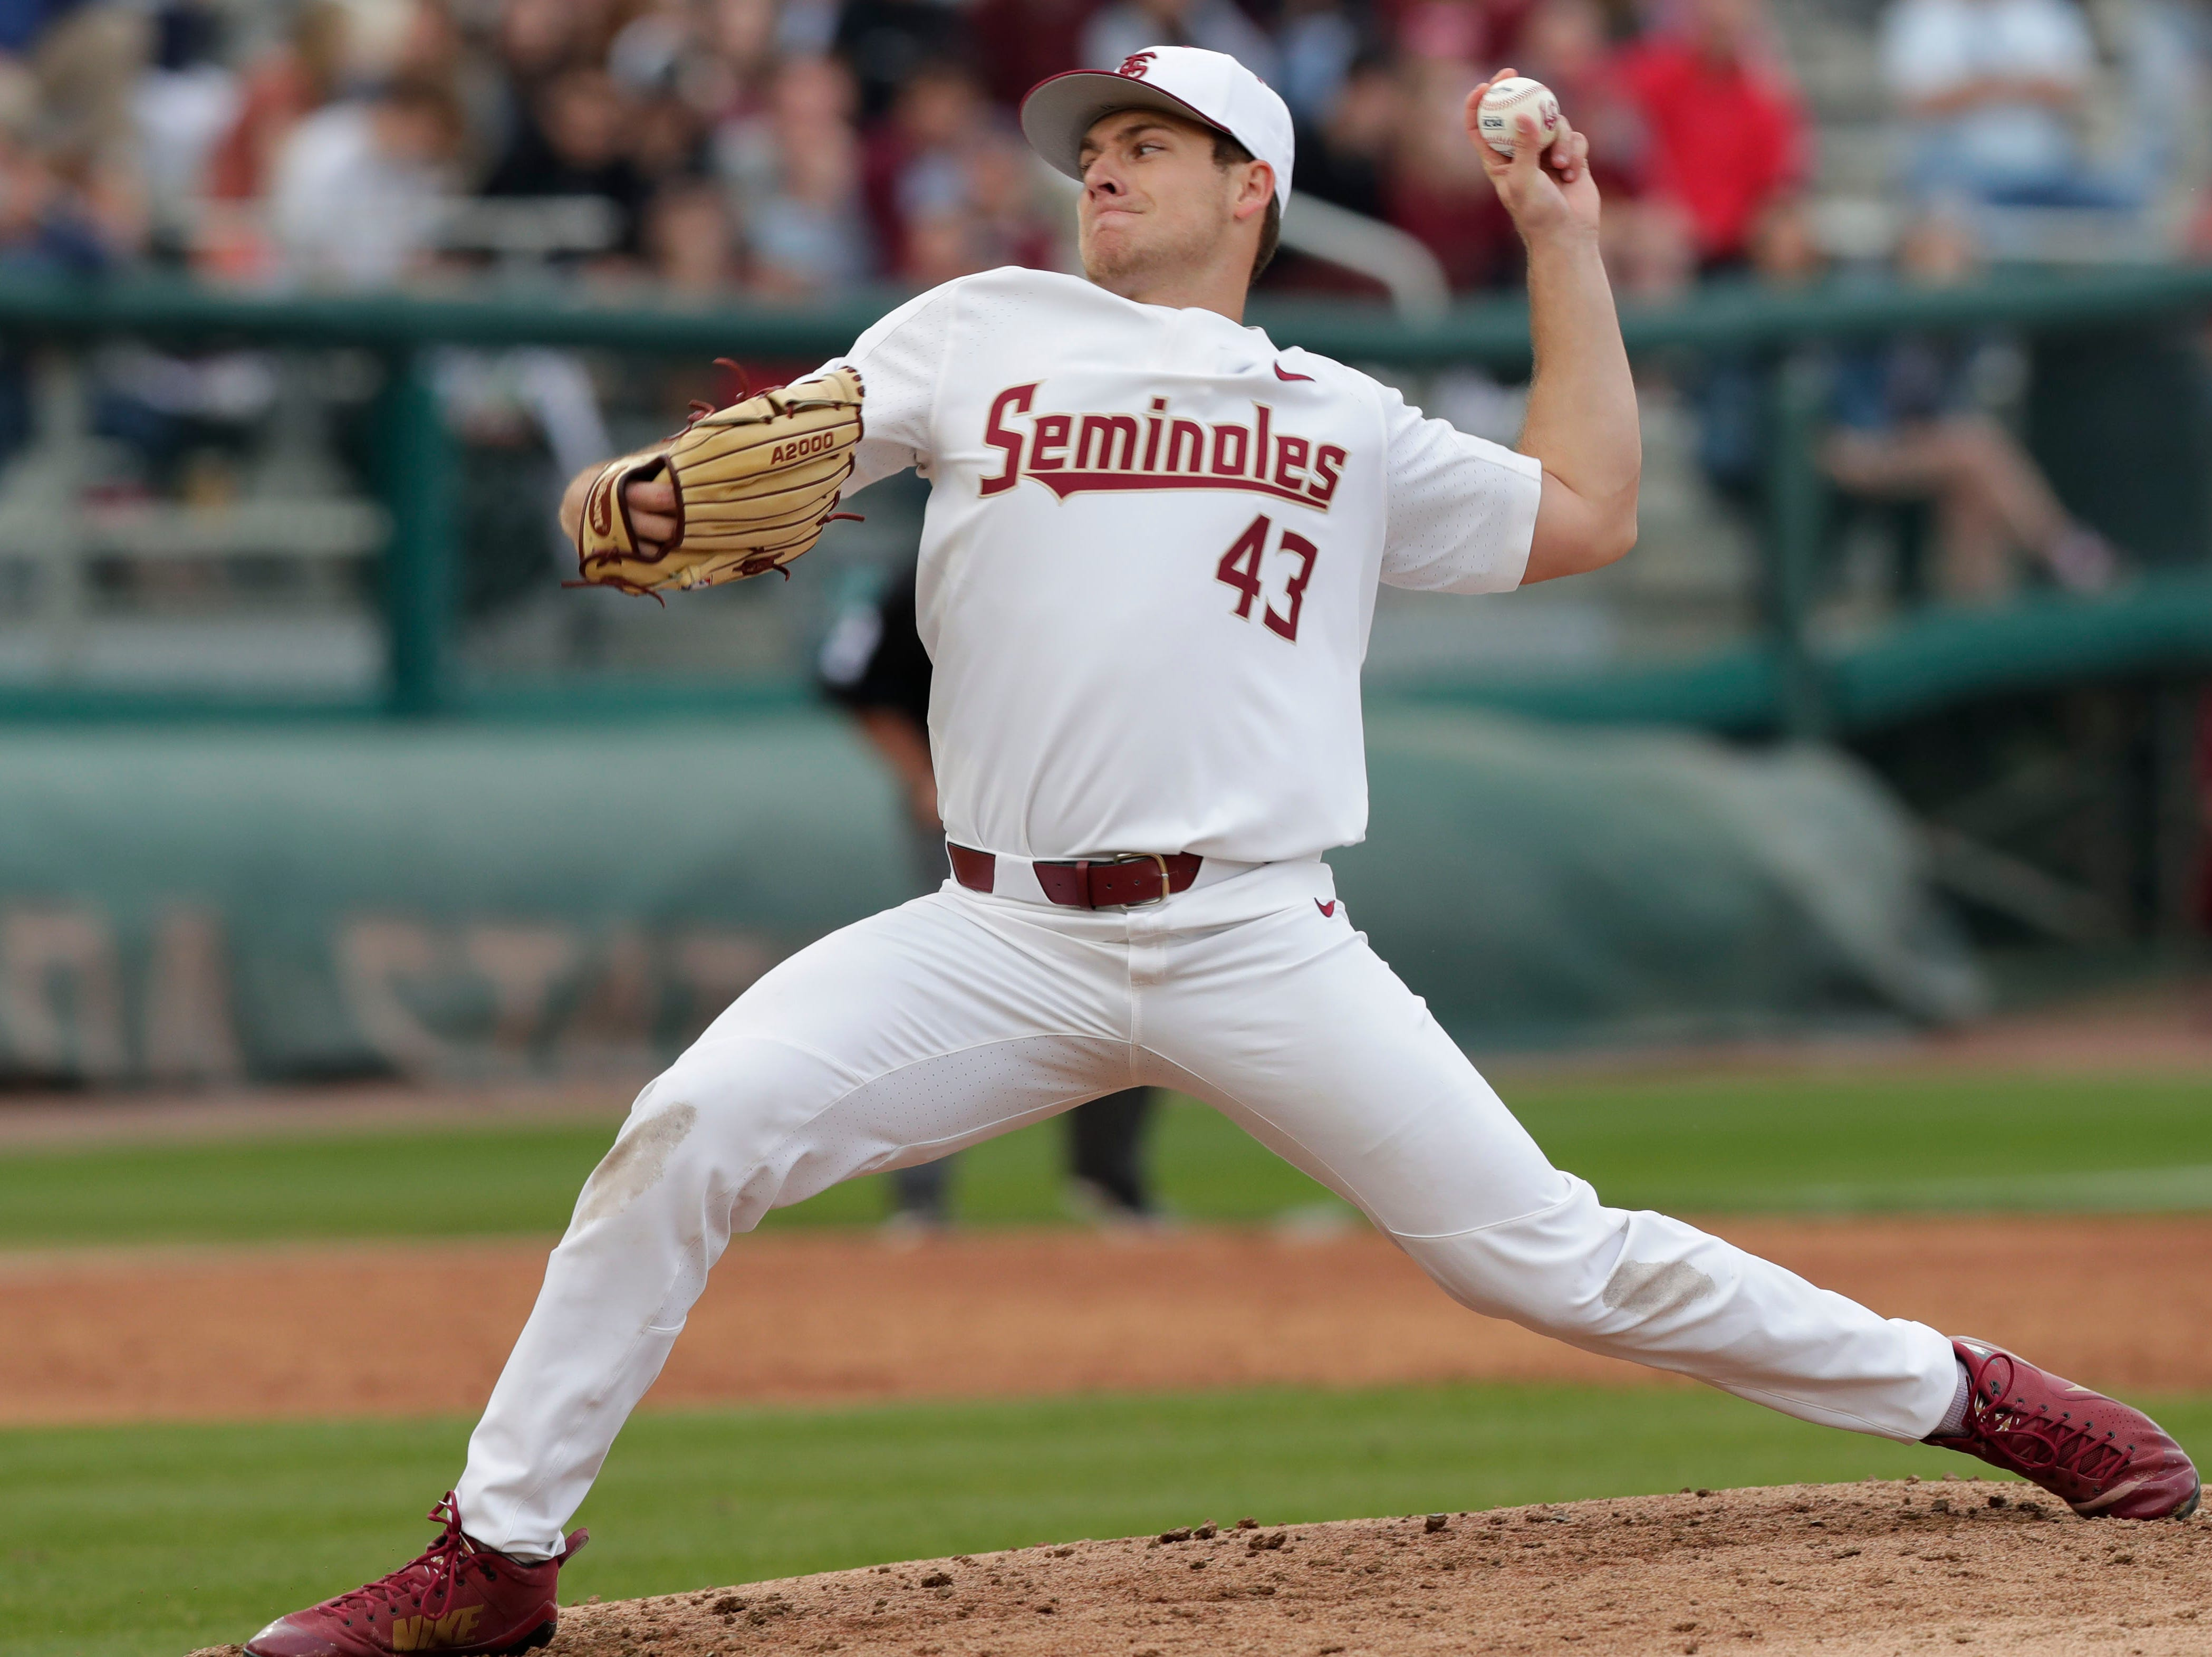 Florida State Seminoles left handed pitcher/Outfielder Drew Parrish (43) as he pitches to the batter. The Florida State Seminoles host the Maine Black Bears in the 2019 season opener game, Friday Feb. 15, 2019.